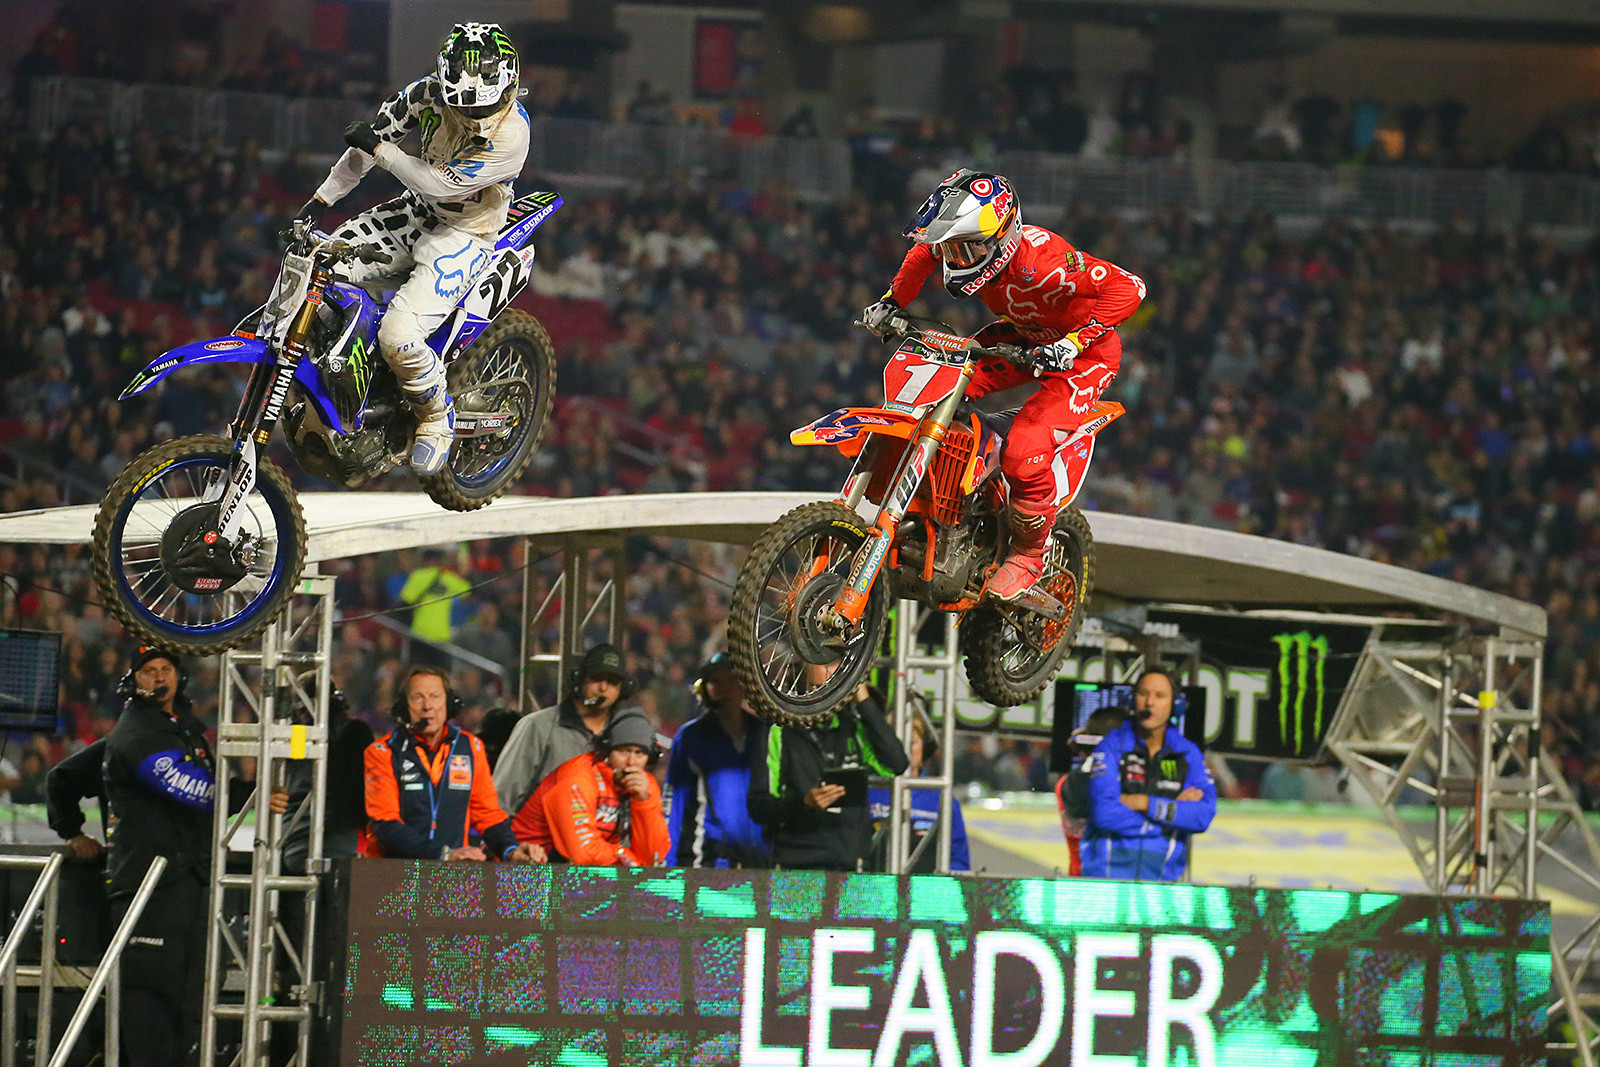 Chad Reed and Ryan Dungey - Photo Blast: Glendale - Motocross Pictures - Vital MX